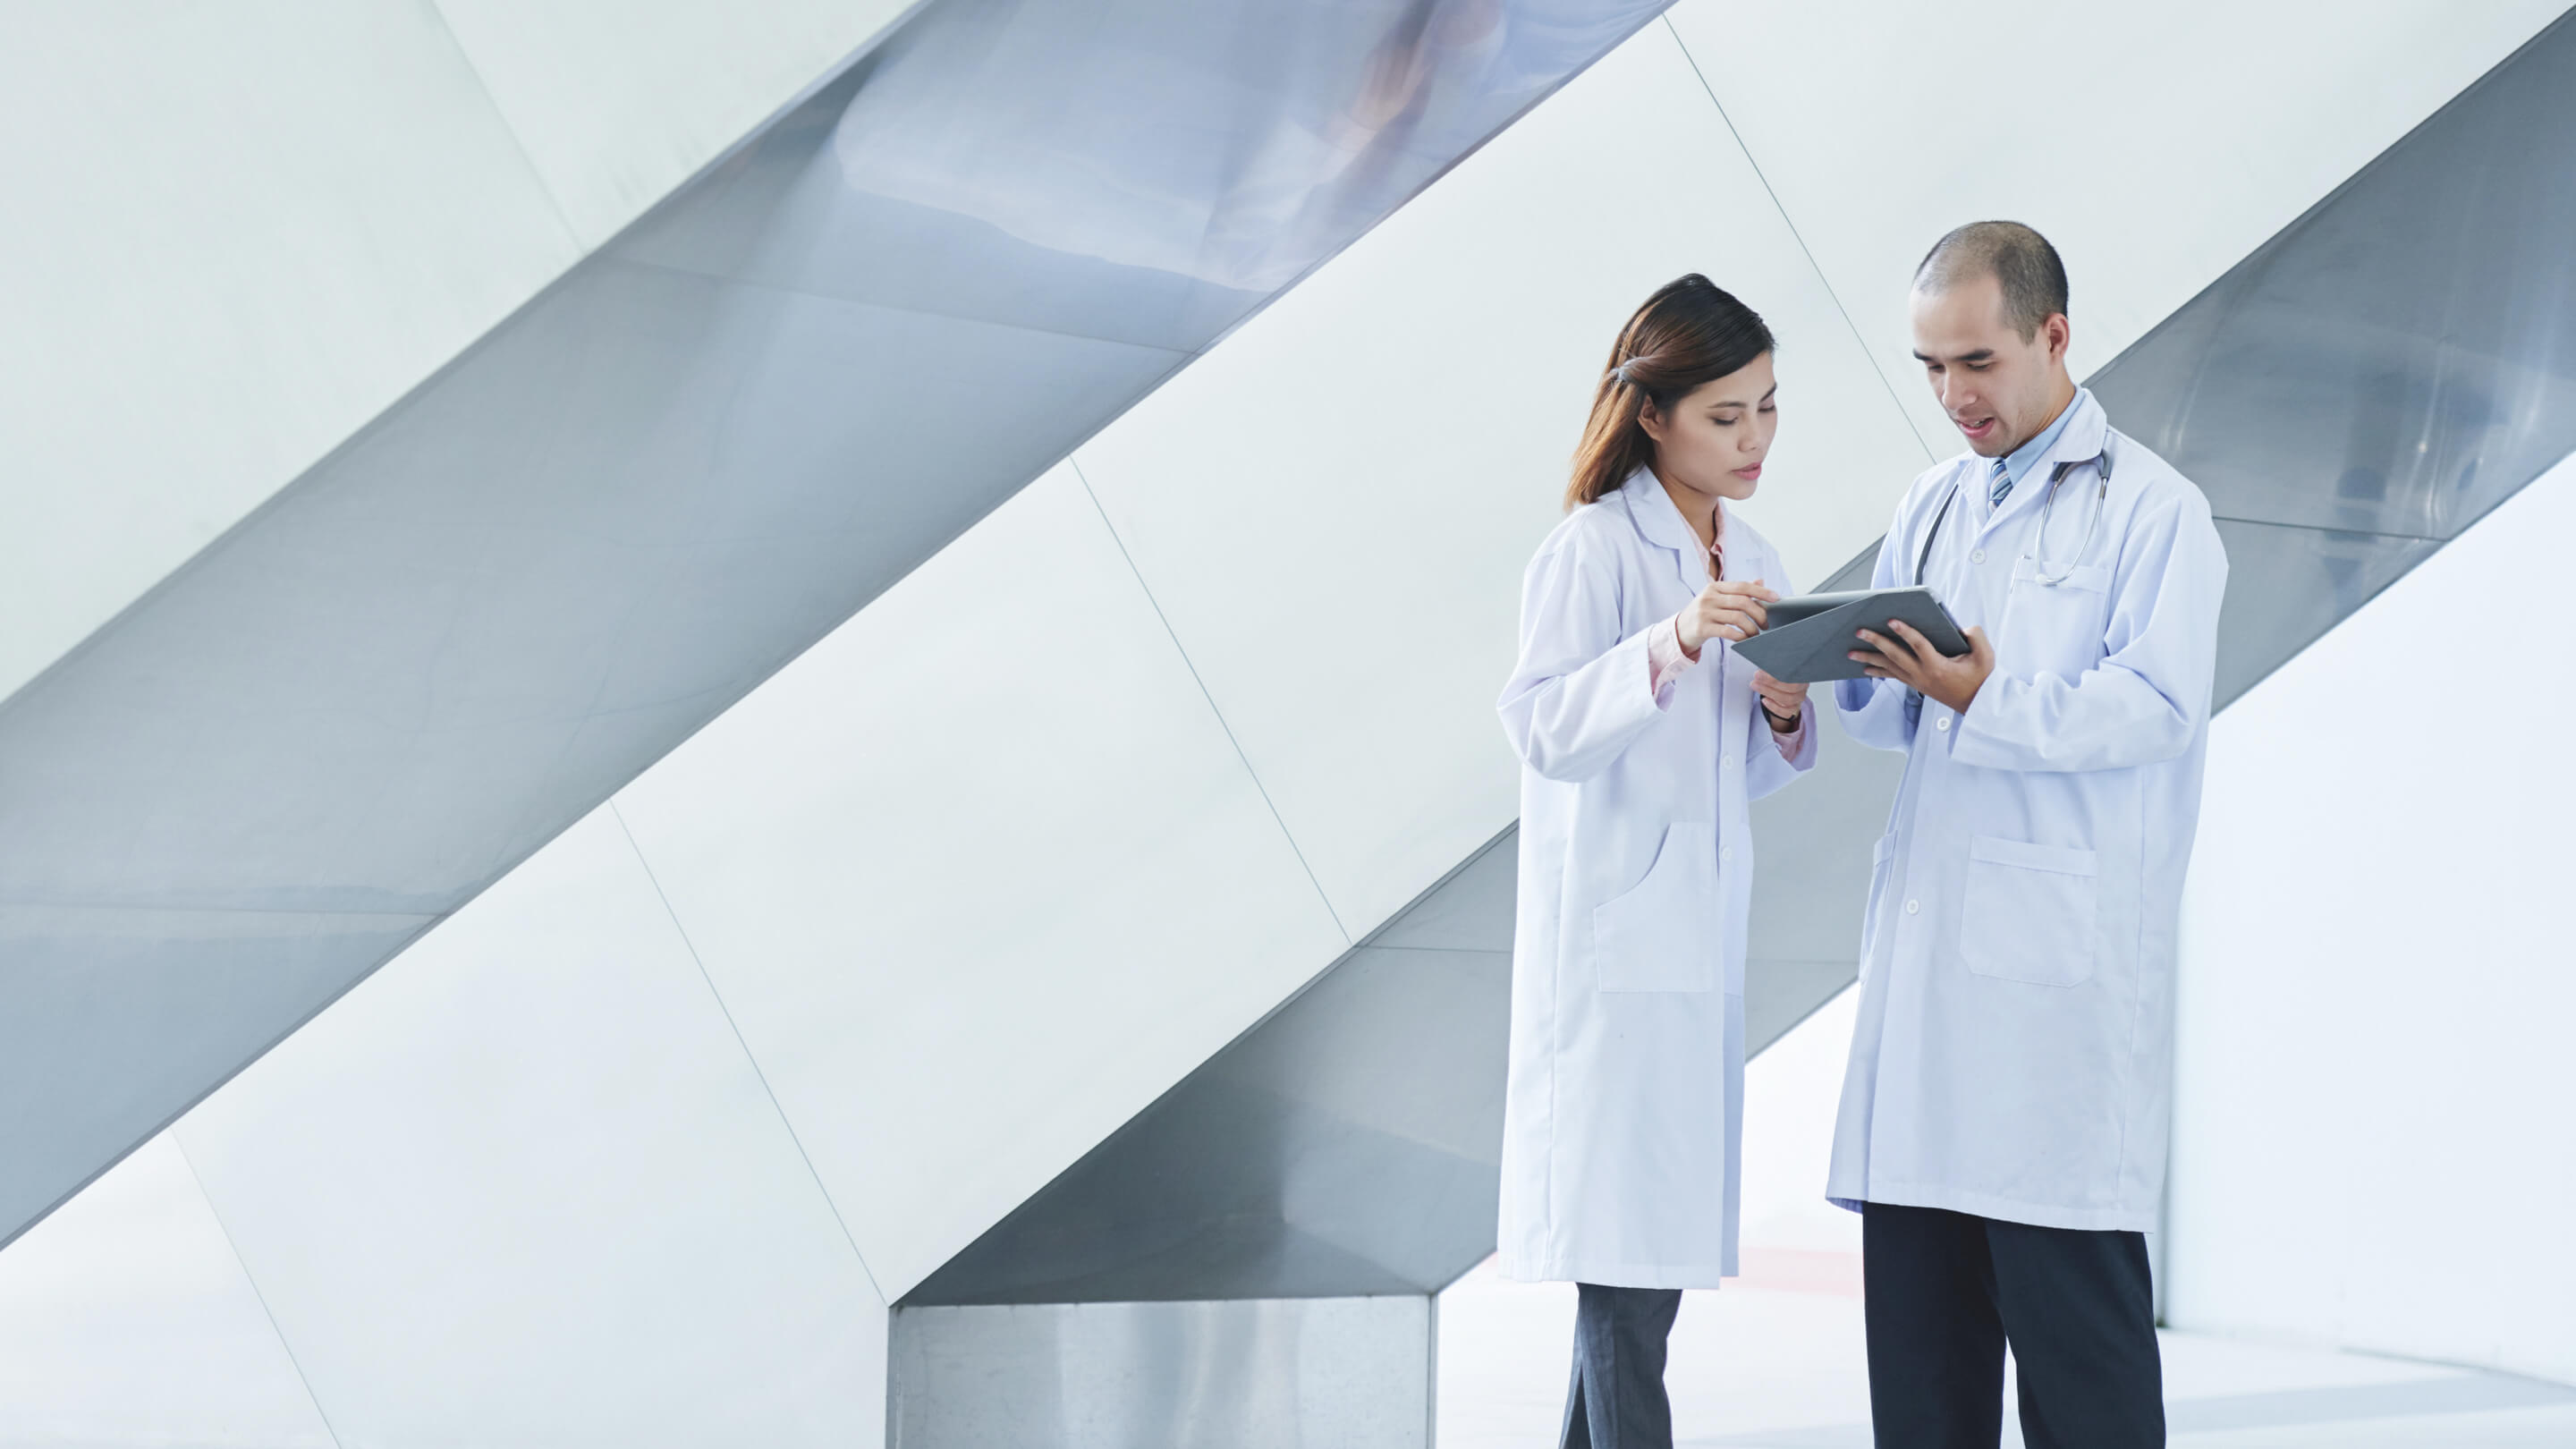 two healthcare professionals looking at chart